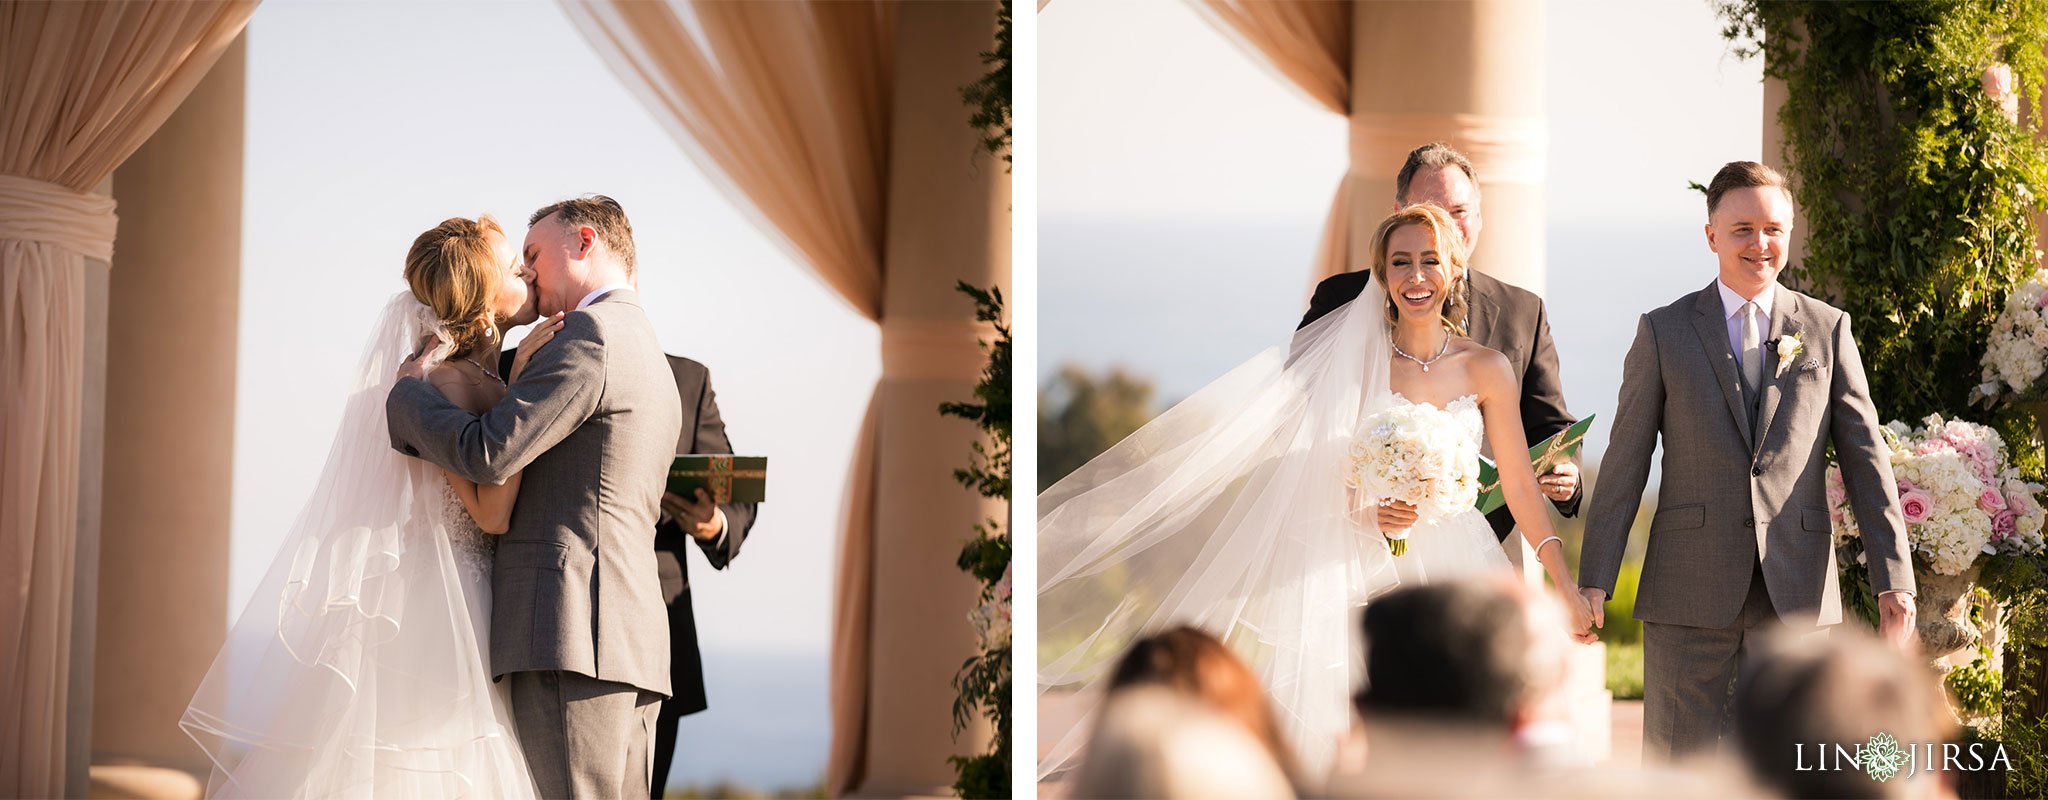 22 pelican hill resort newport coast wedding ceremony photography